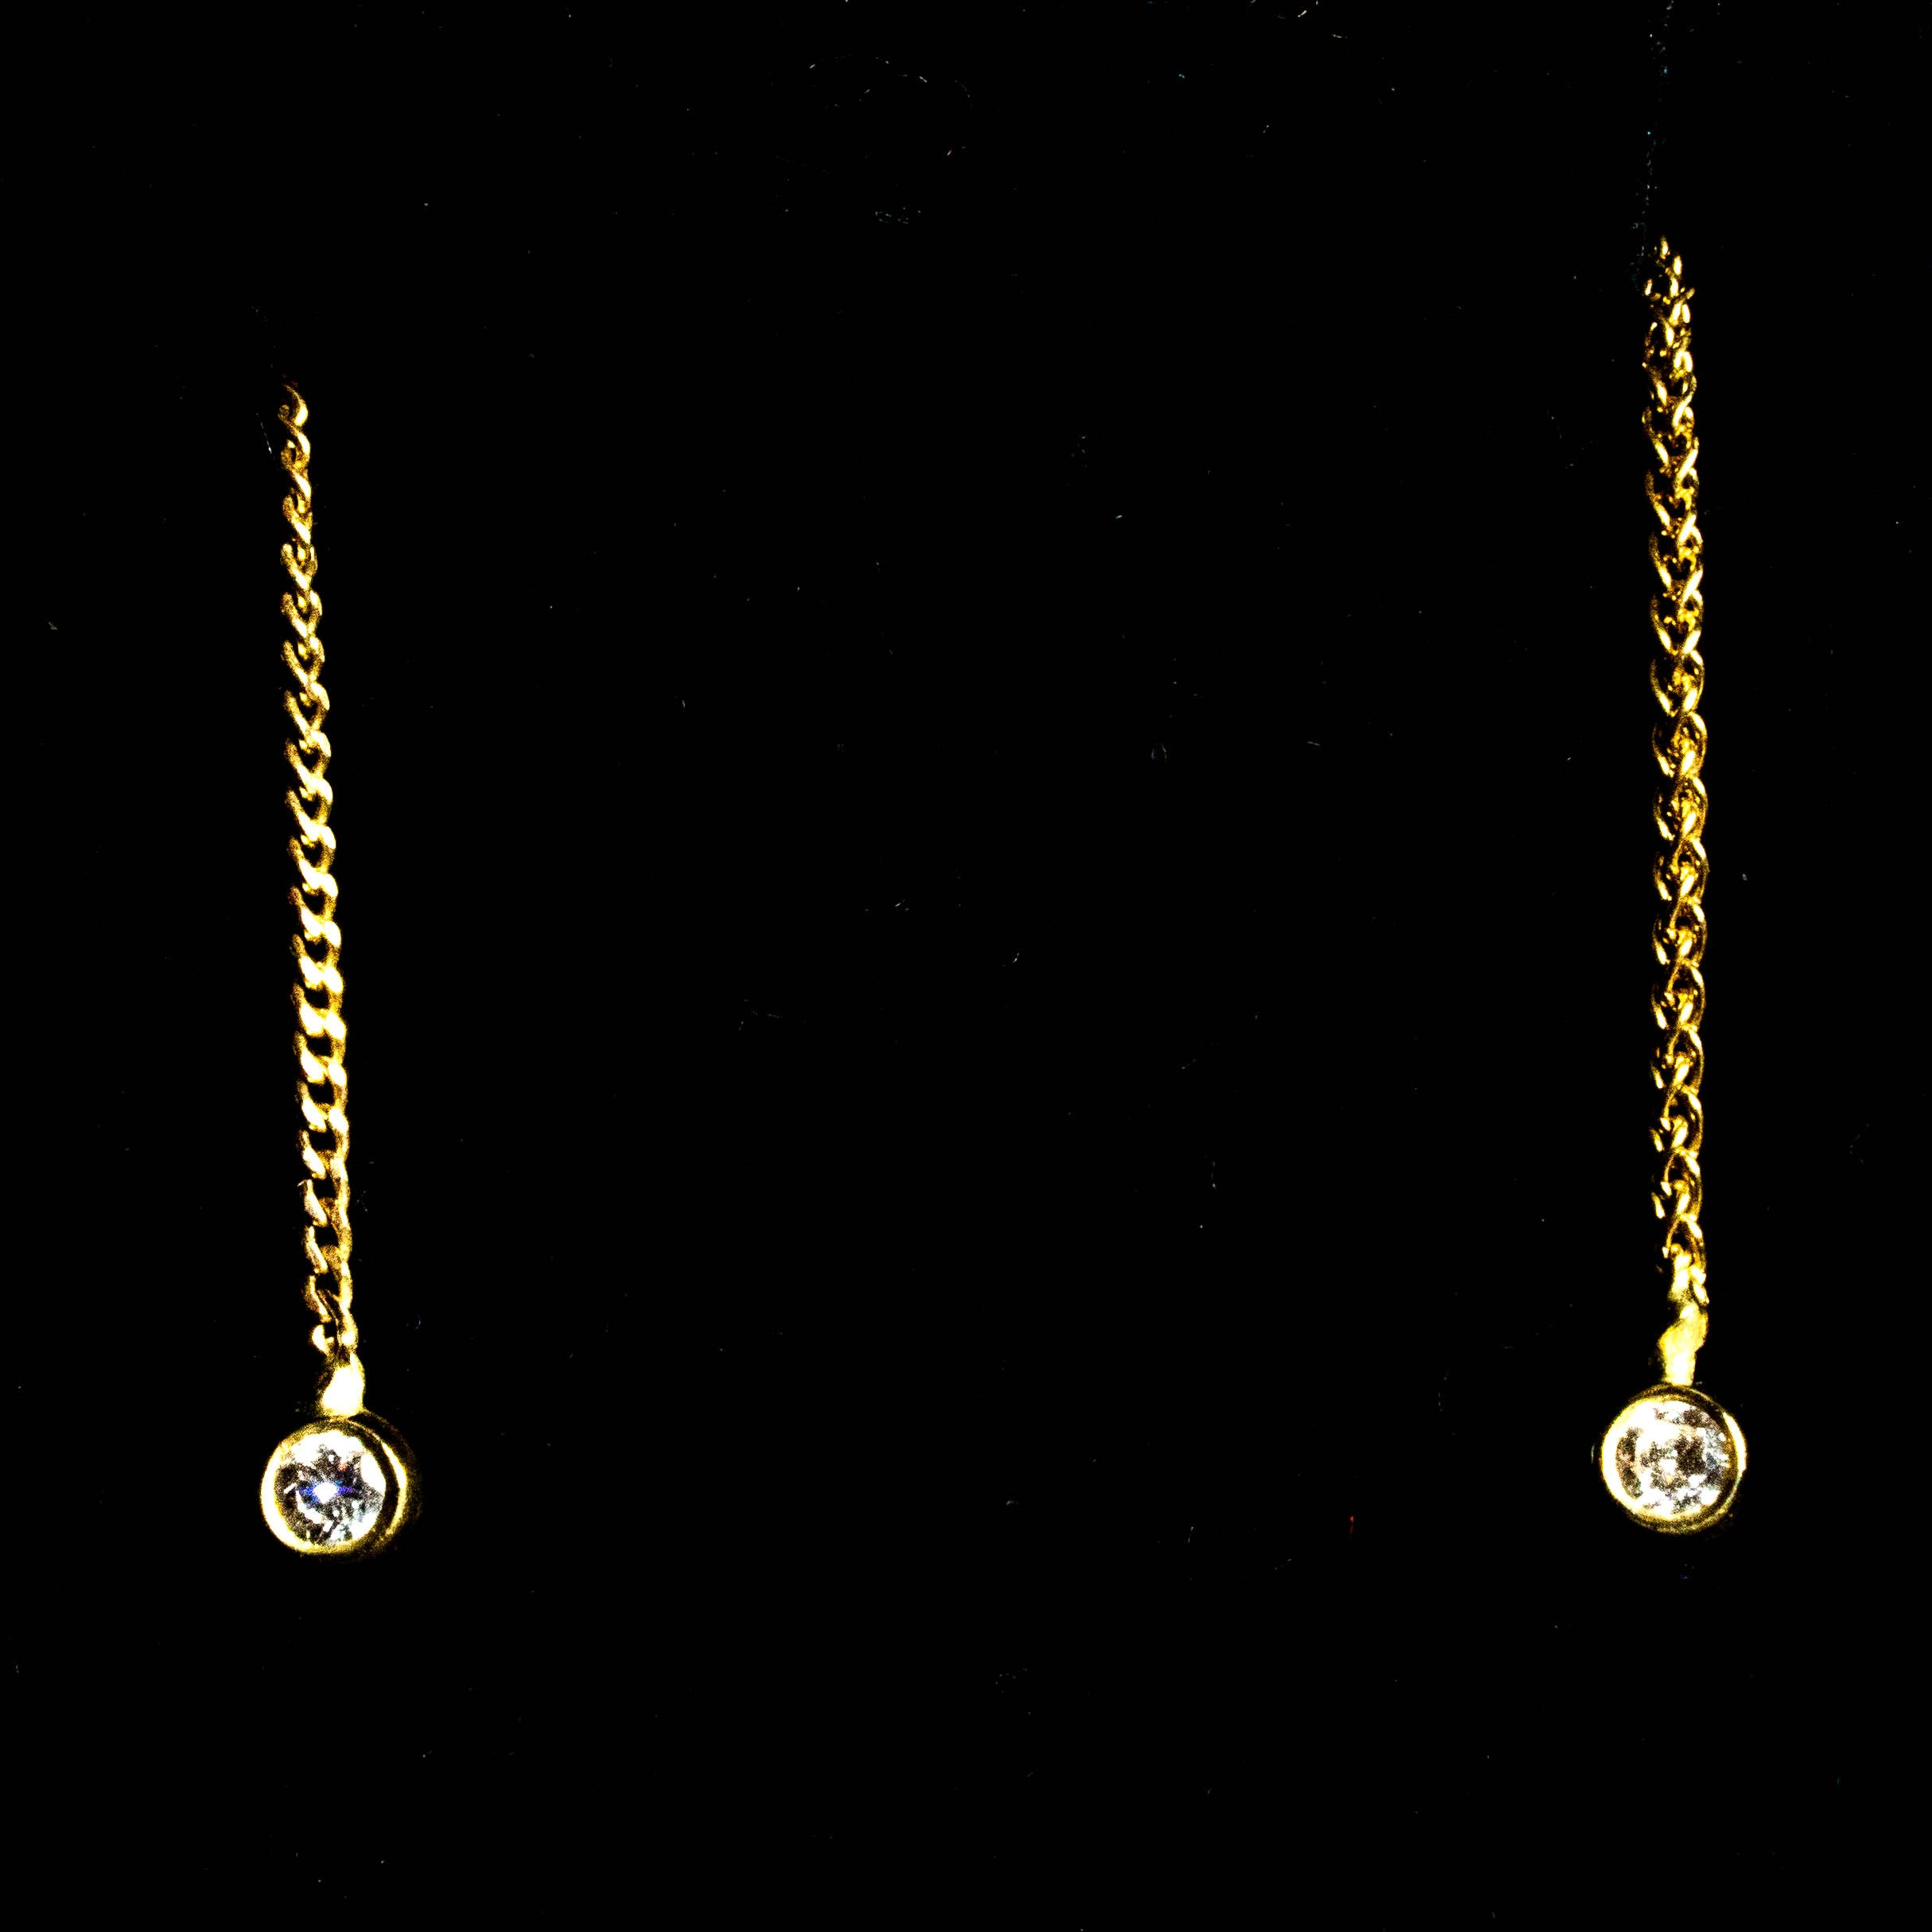 18K Small round White Diamond  on a chain Earring